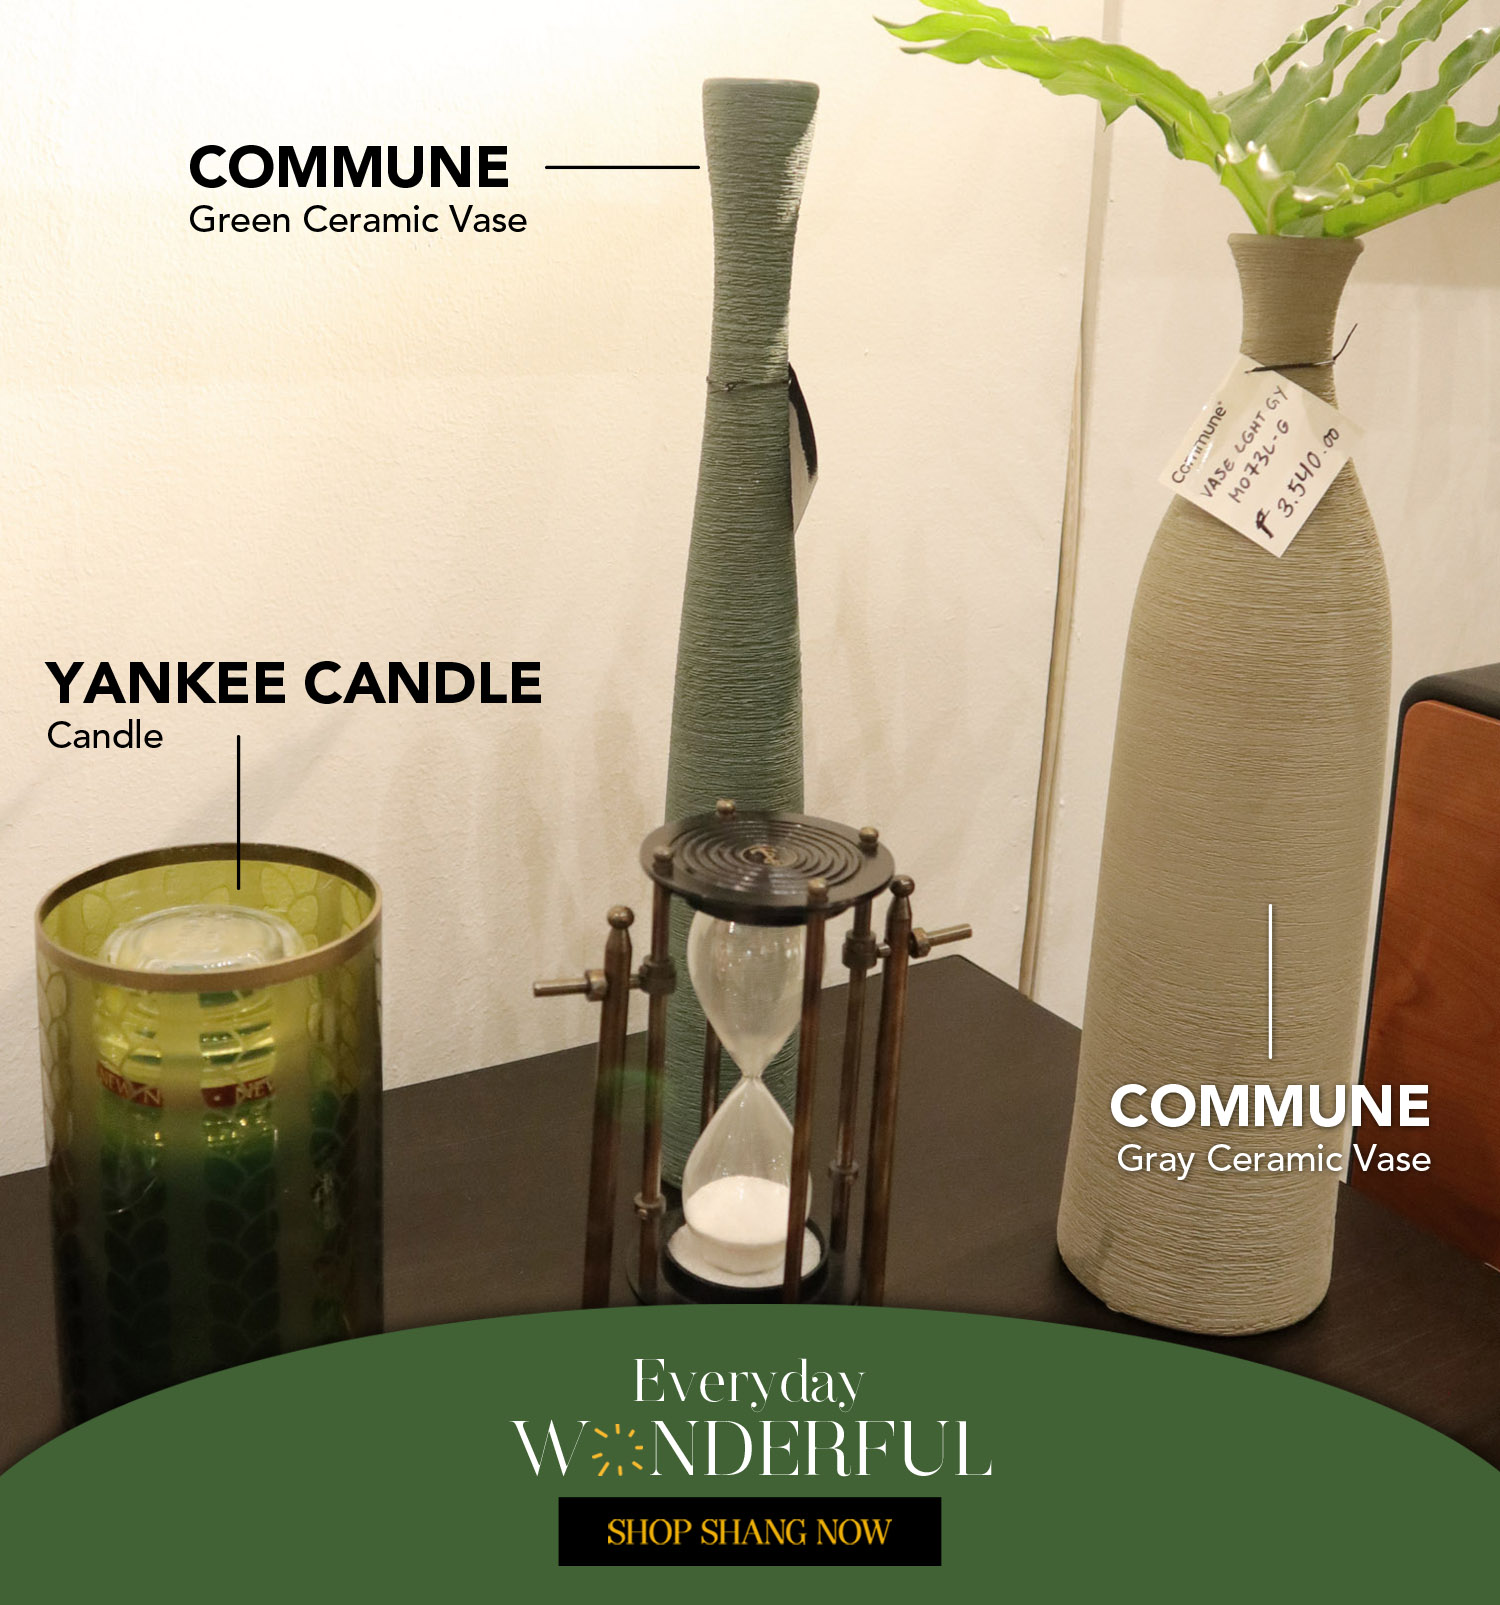 Candle from Yankee Candle, Green & Gray Ceramic Vase from Commune